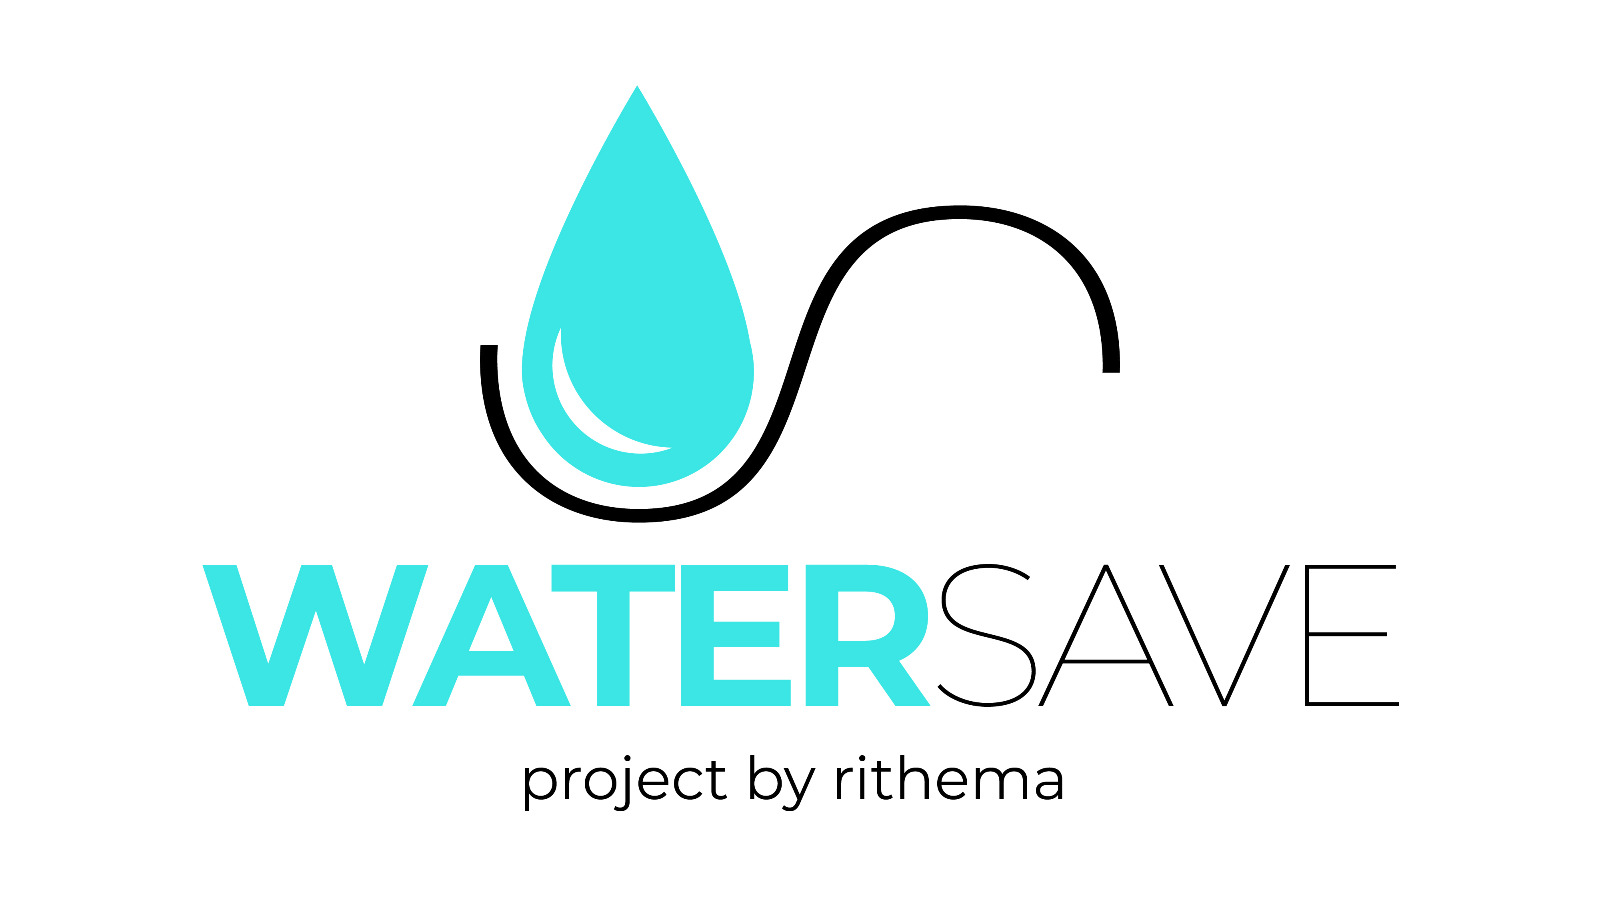 WaterSave logo